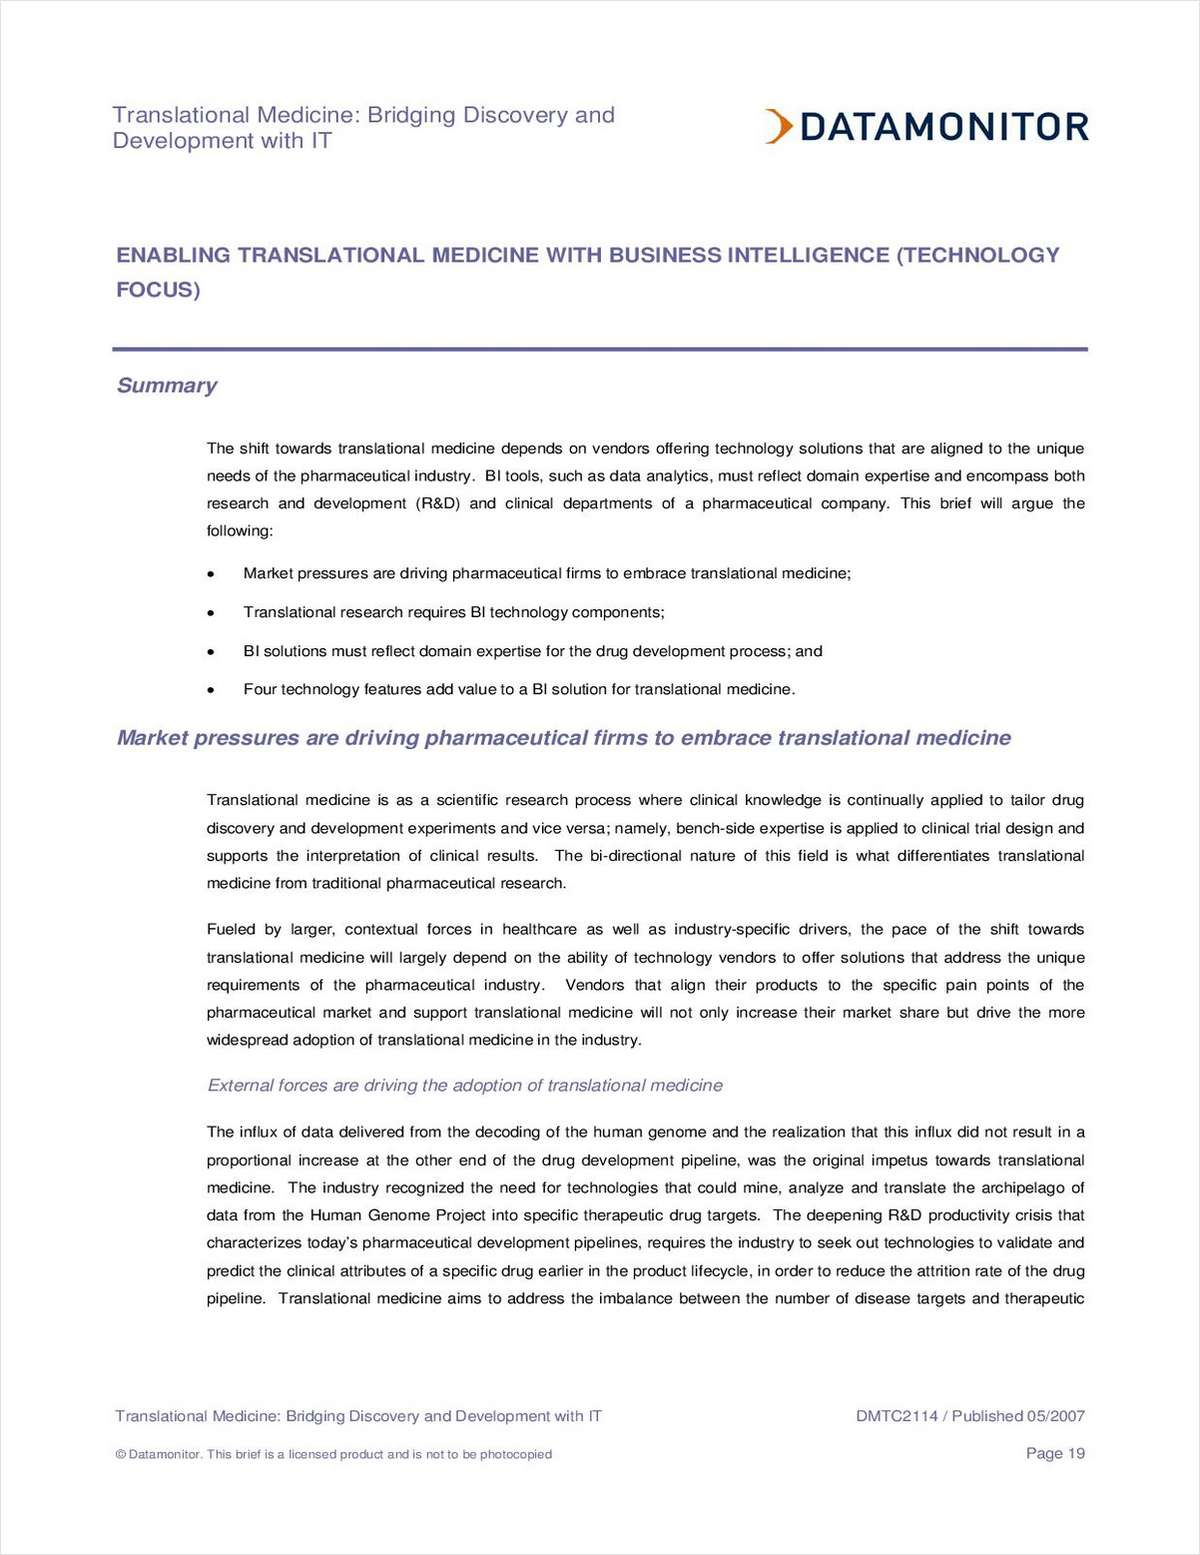 Enabling Translational Medicine with Business Intelligence